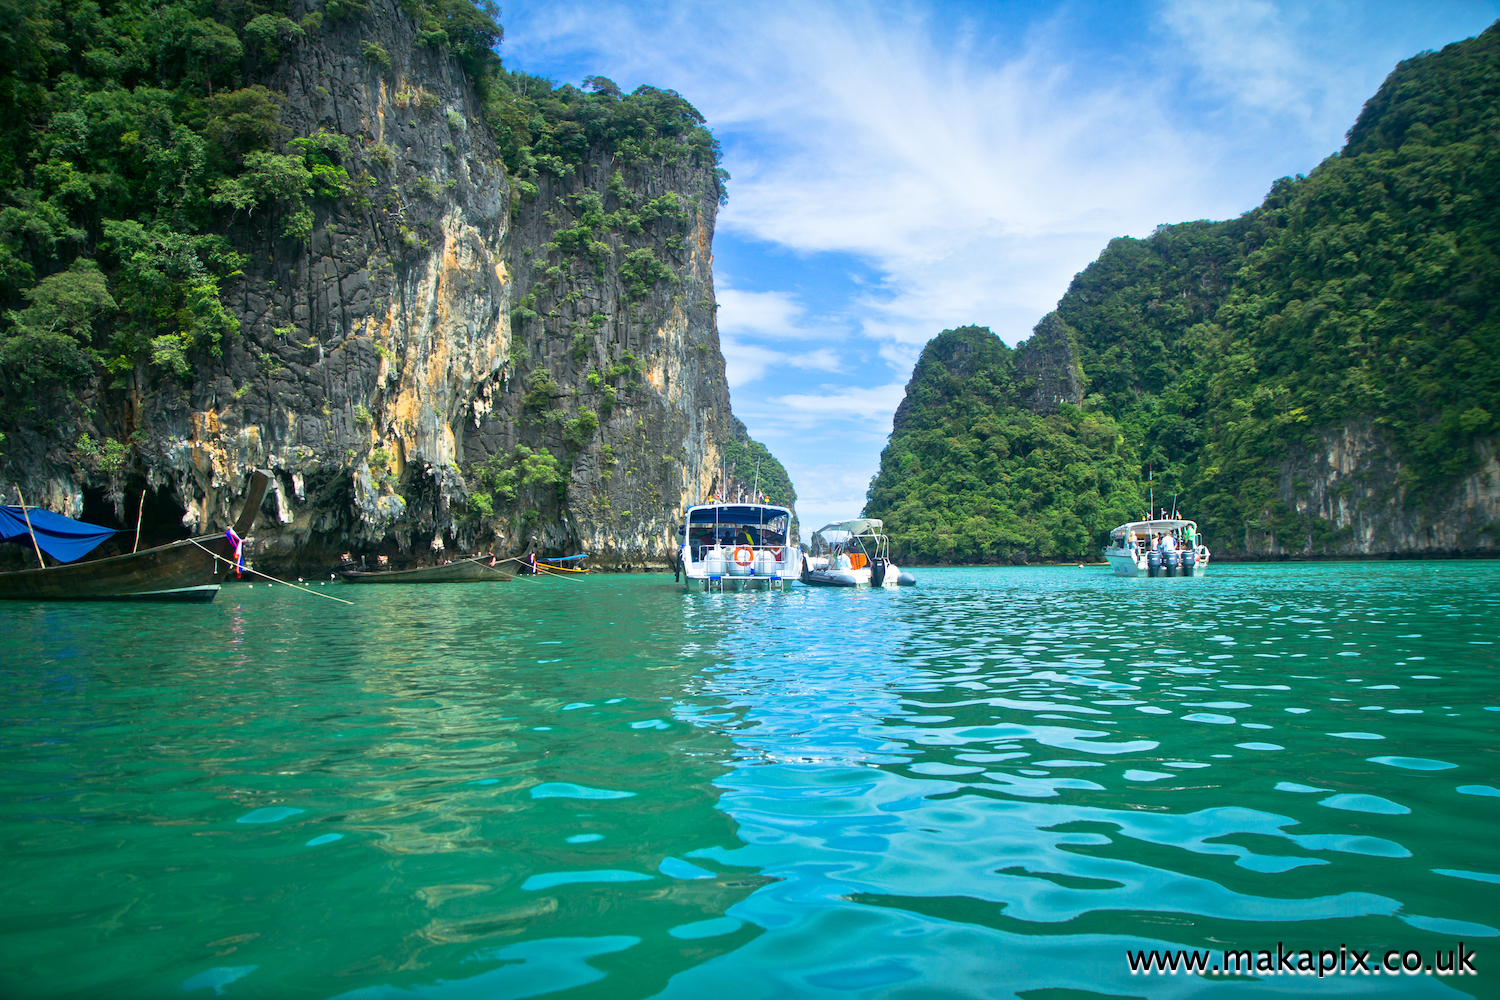 Khao Phing Kan, Thailand also known as James Bond Island